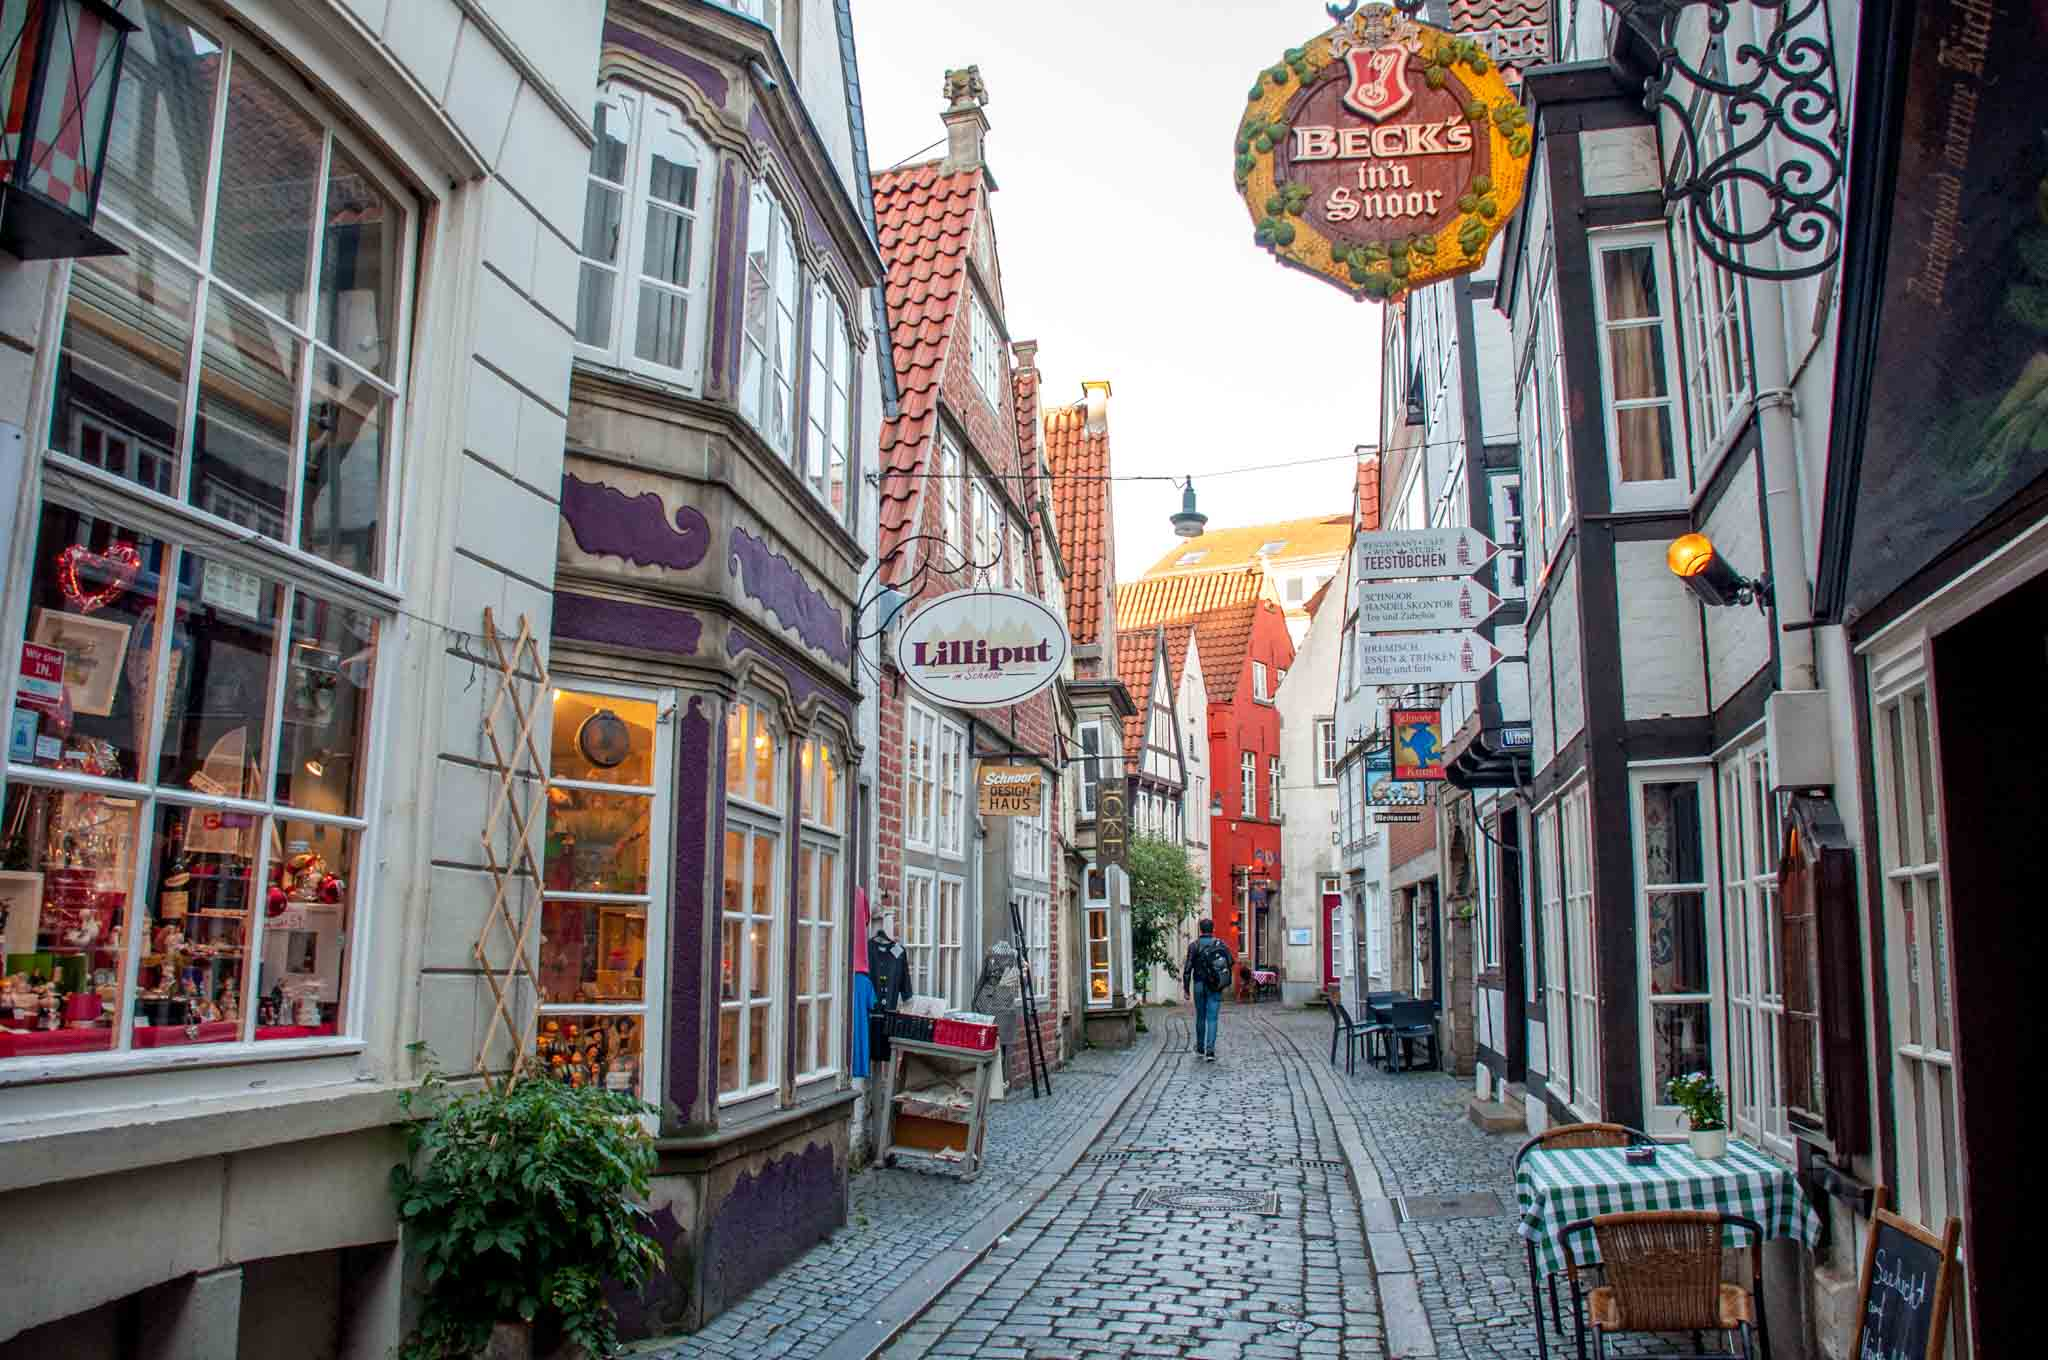 Narrow, cobblestone street and storefronts